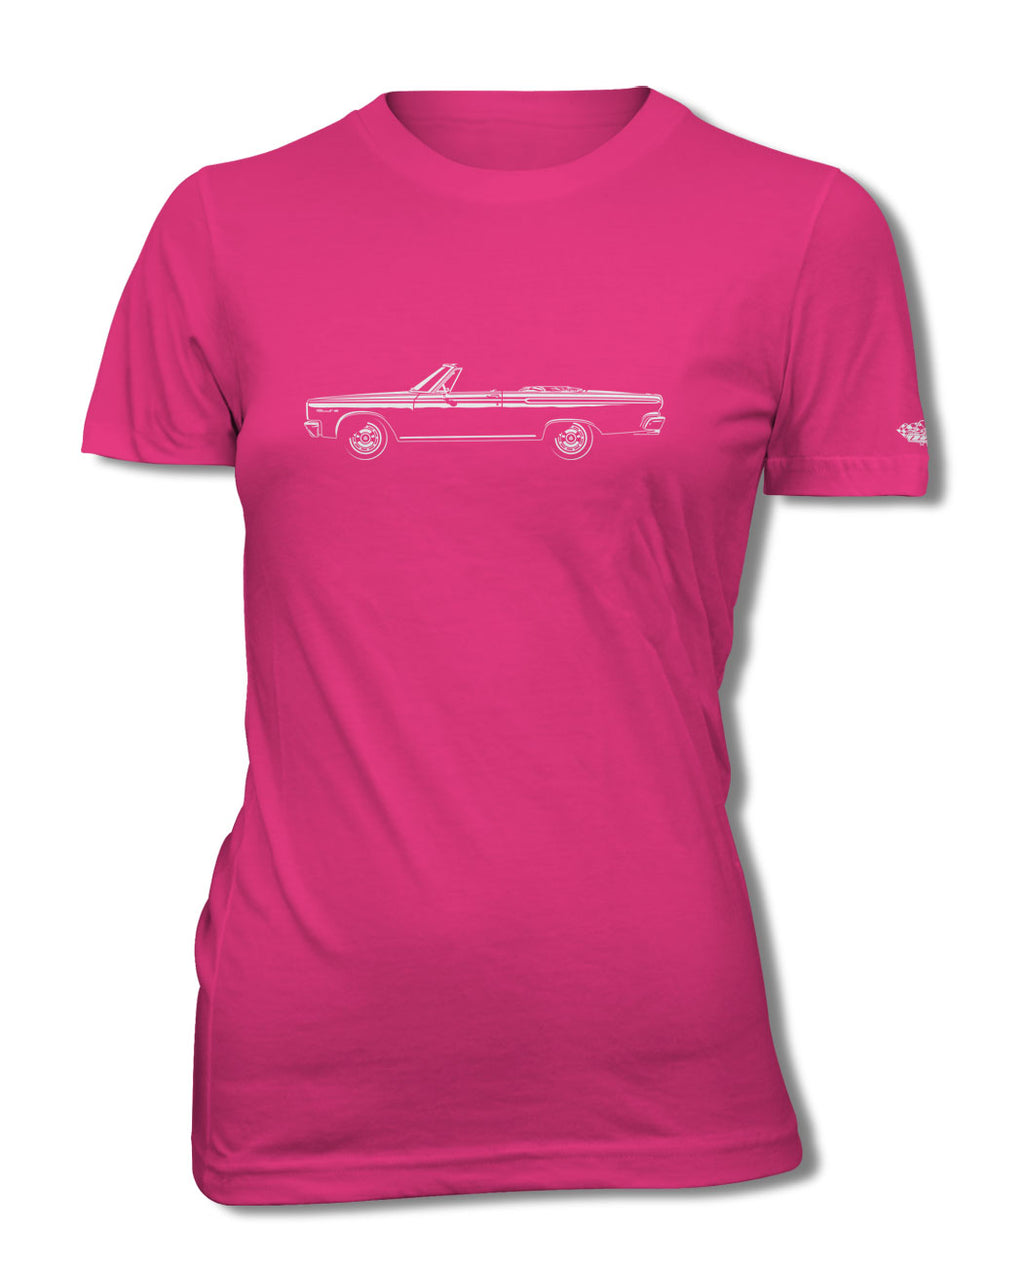 1965 Dodge Coronet 440 Convertible T-Shirt - Women - Side View